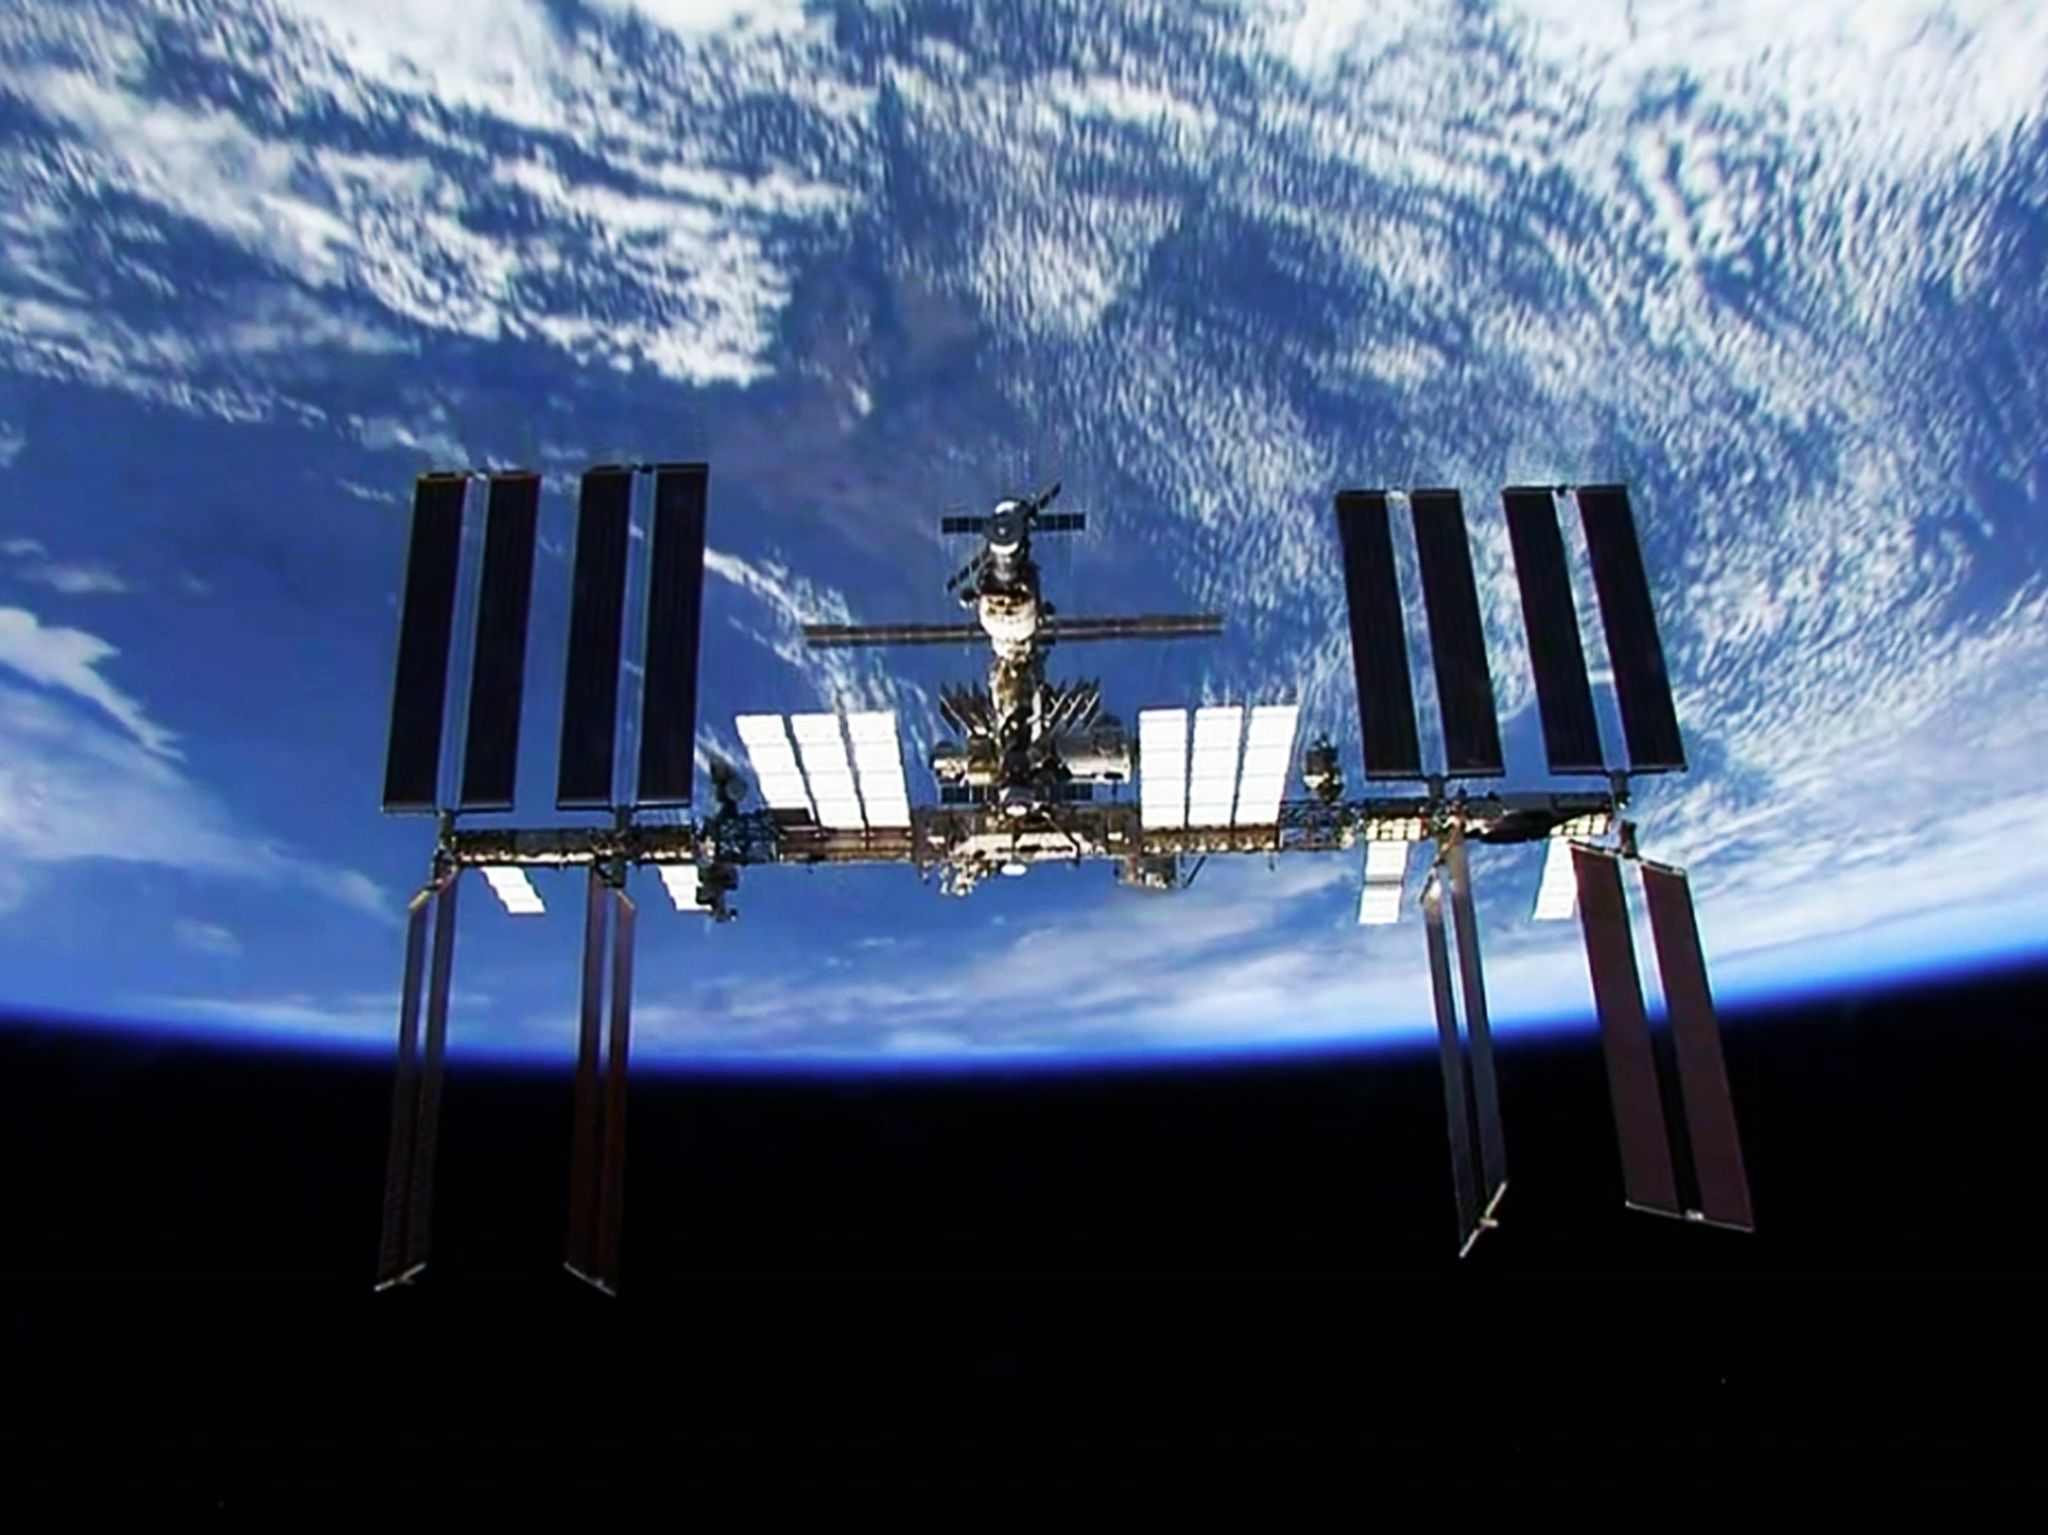 3D view of the ISS. This image is from ISS: 24/7 On A Space Station. [Photo of the day - October 2018]